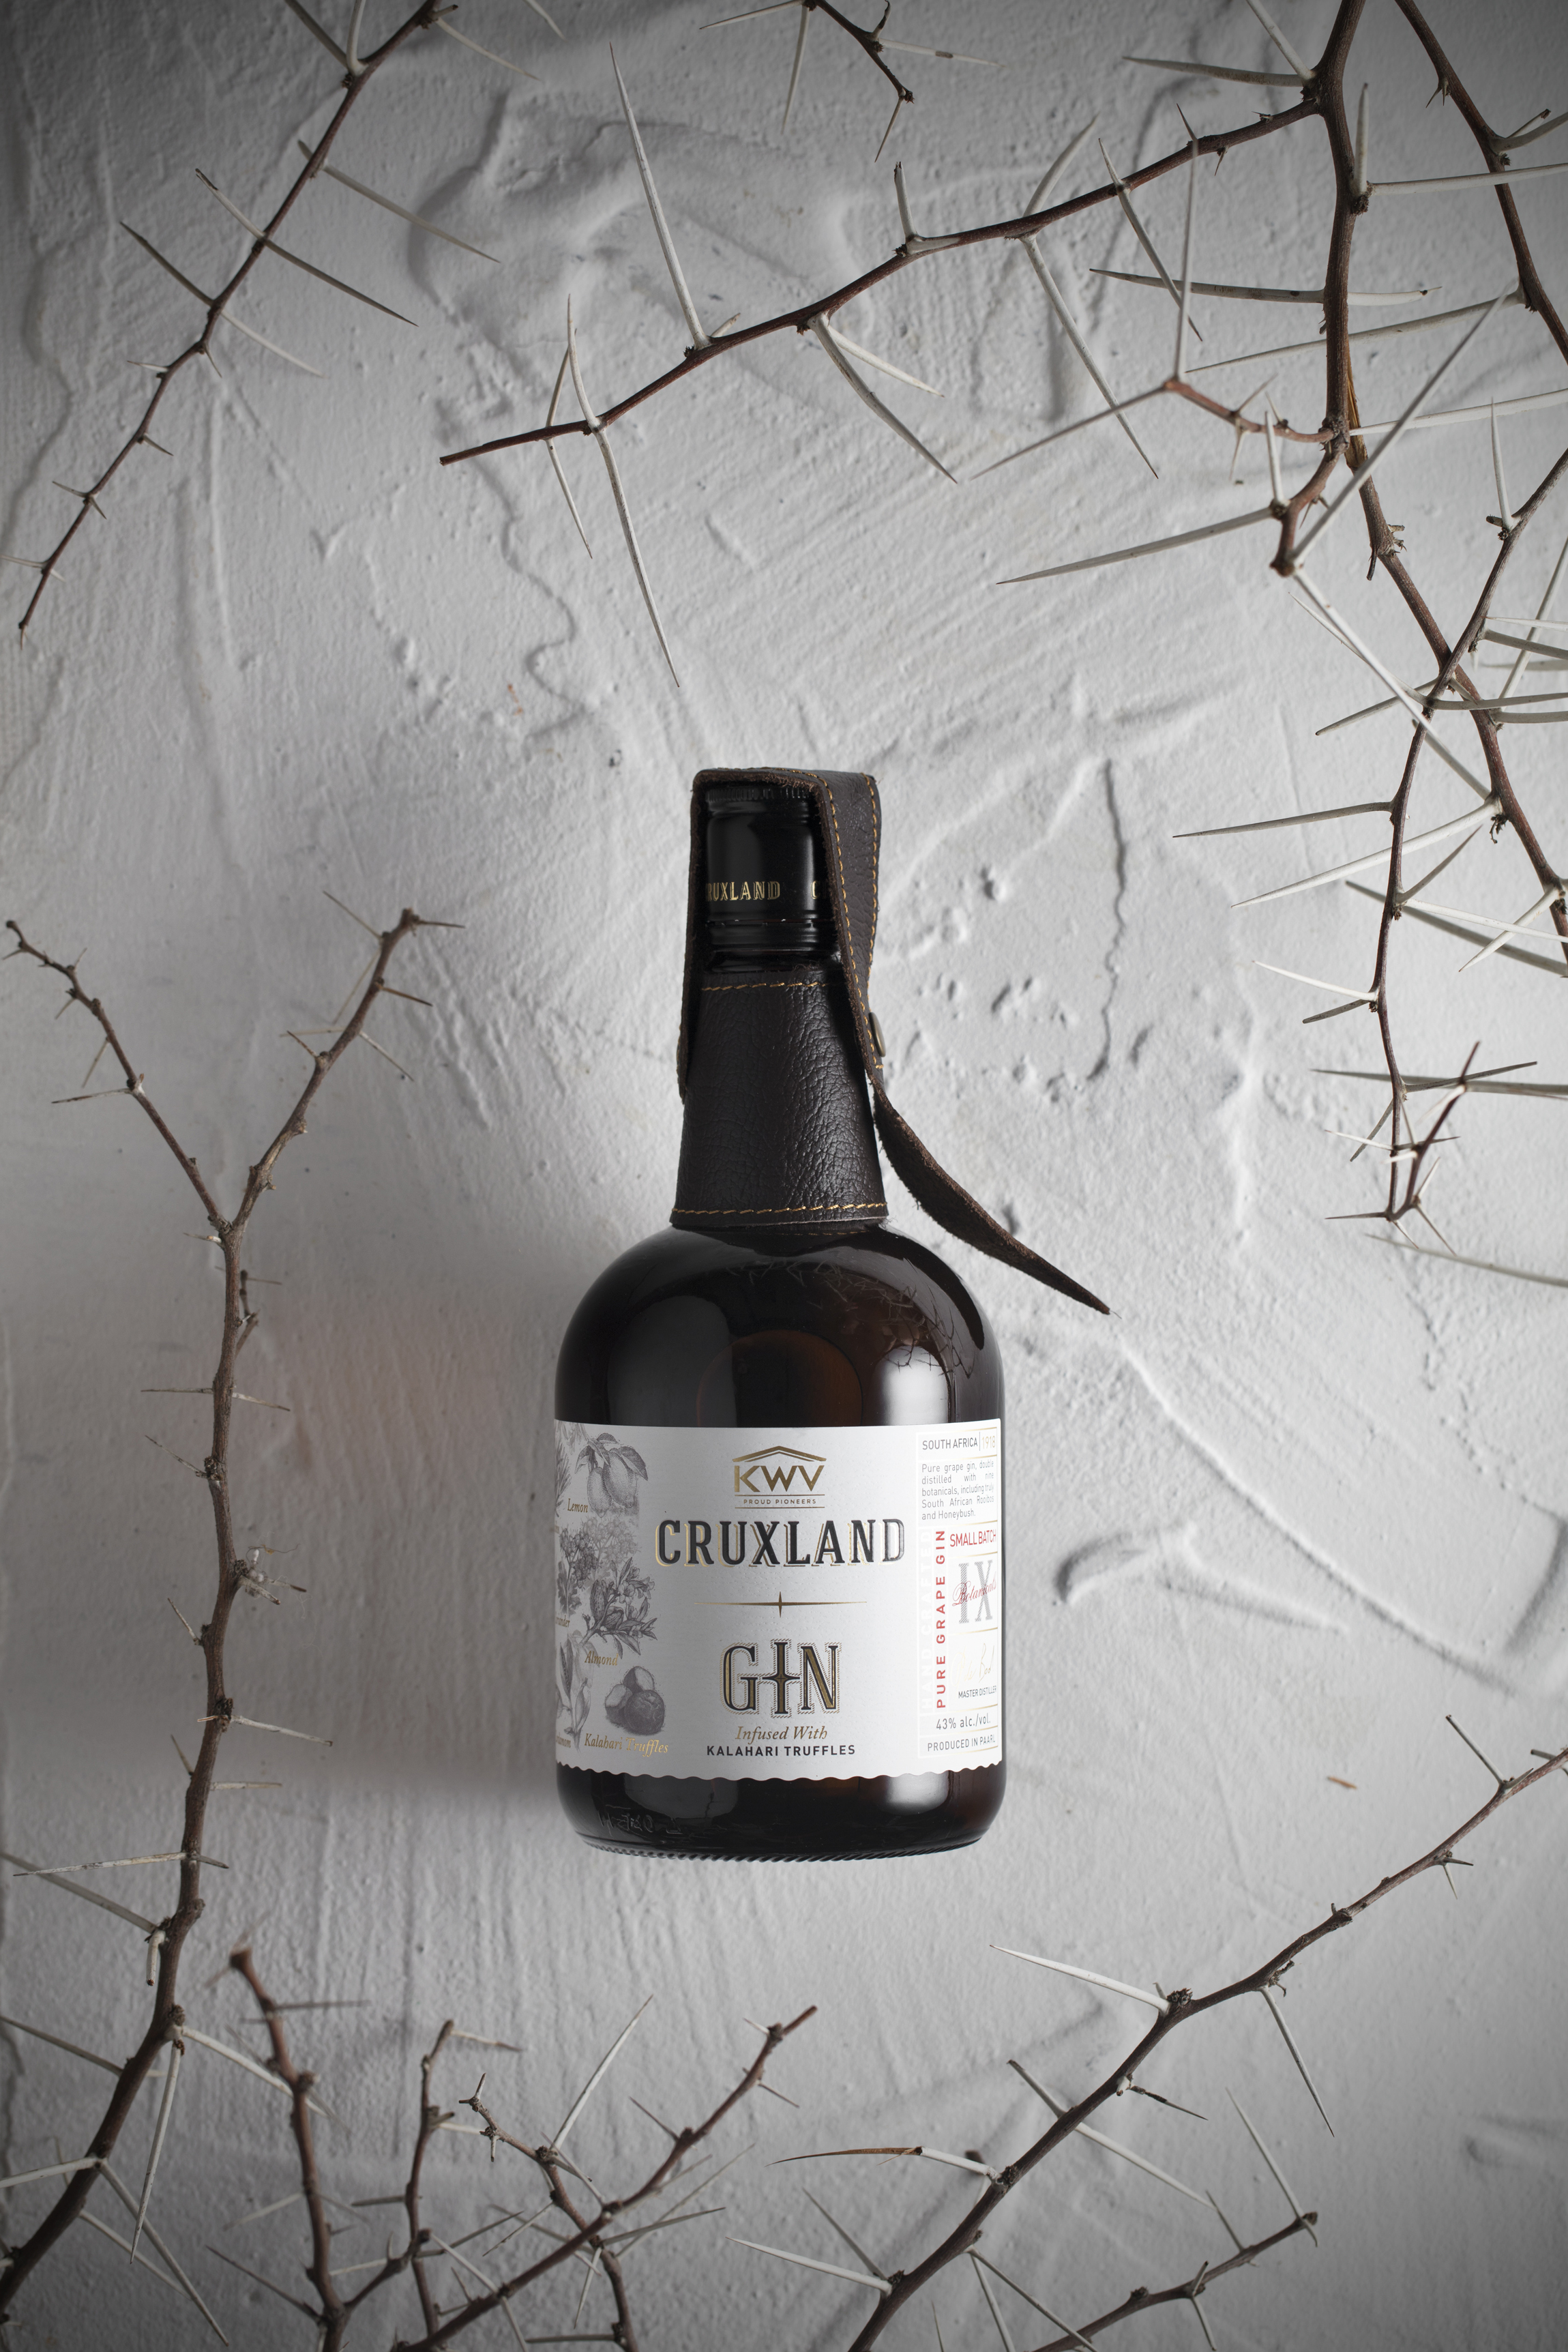 Cruxland Gin named Best South African London Dry Gin at World Gin Awards